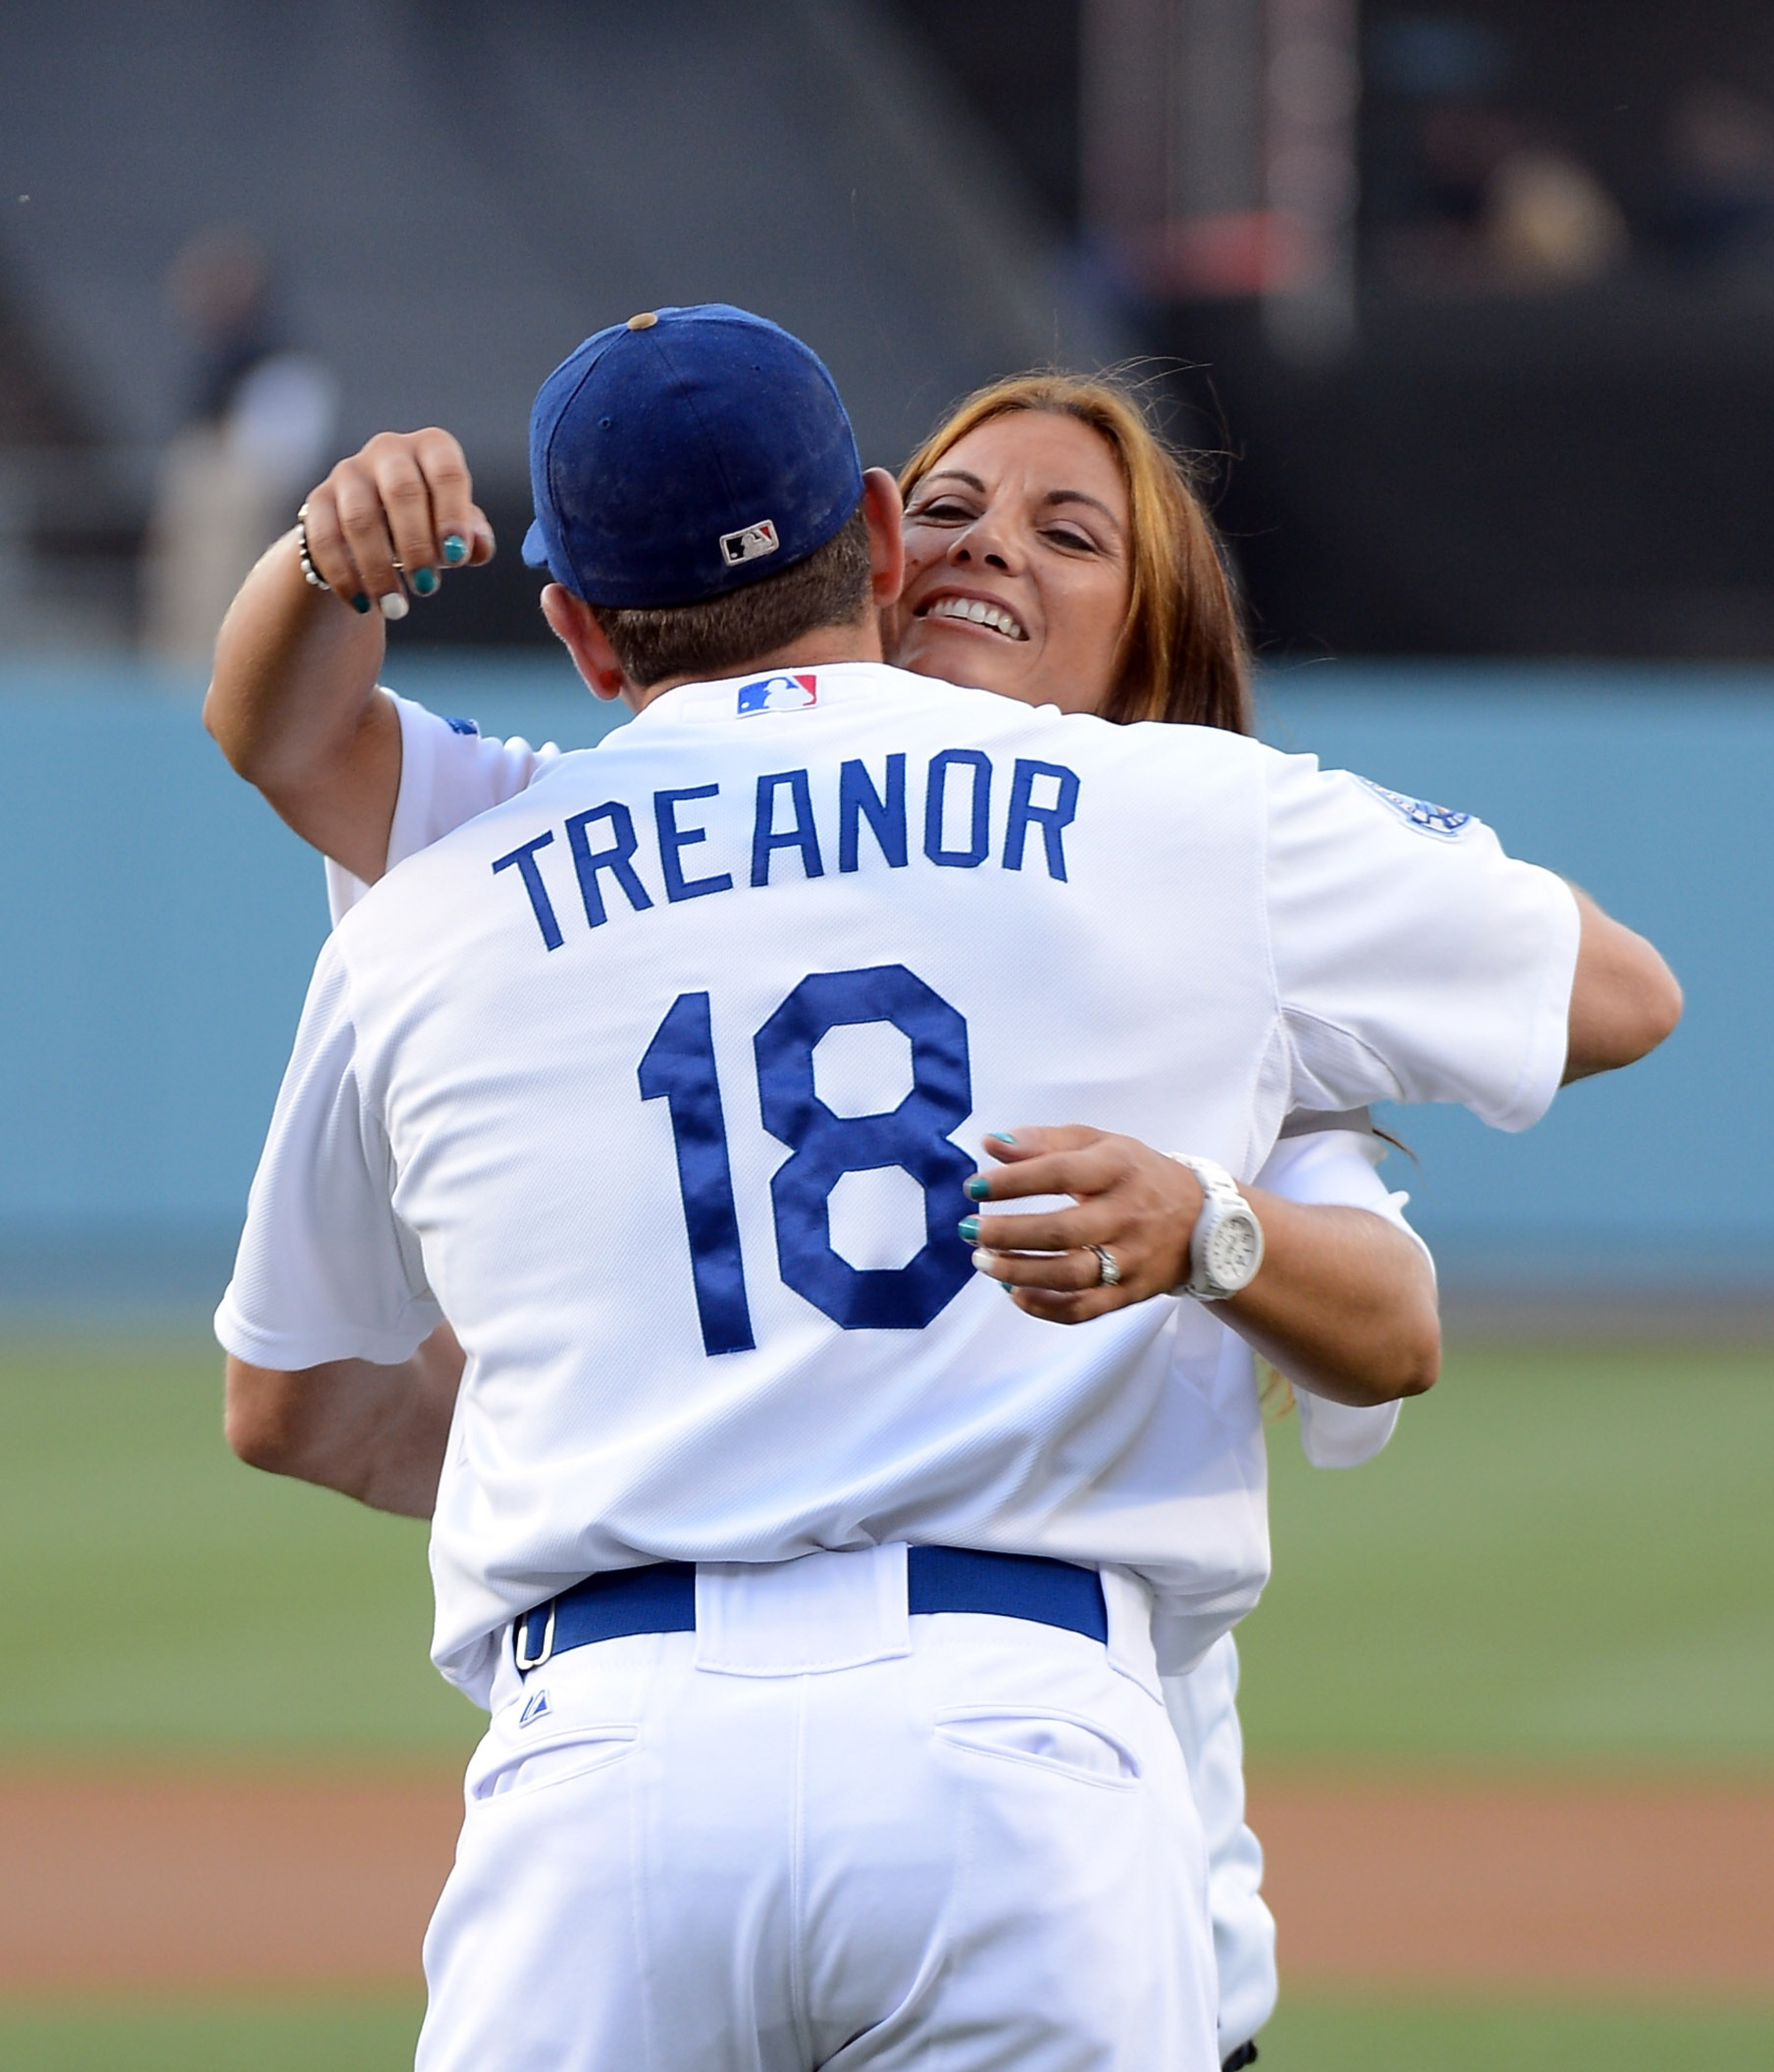 Matt Treanor is the only Dodger to catch a ceremonial first pitch from his wife this season at Dodger Stadium.